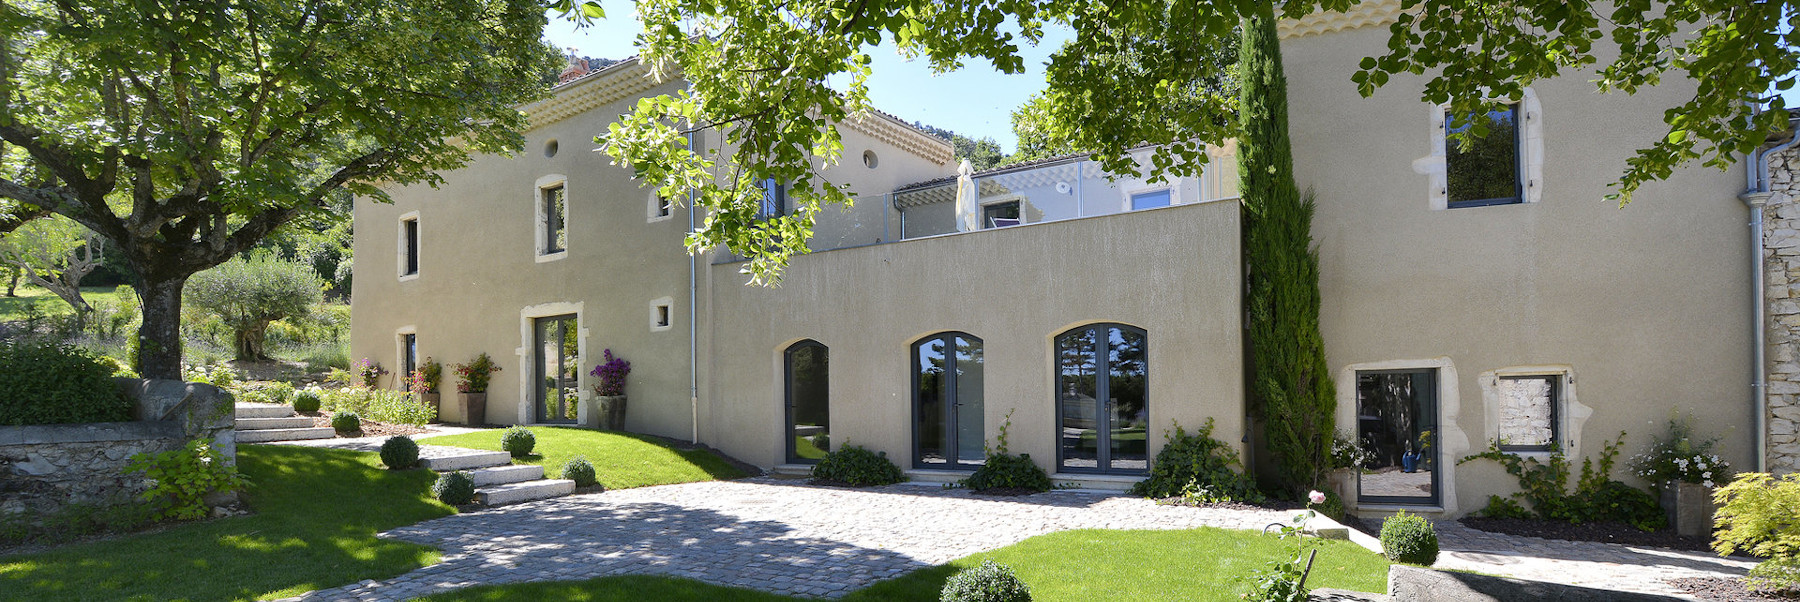 immobilier prestige vaucluse